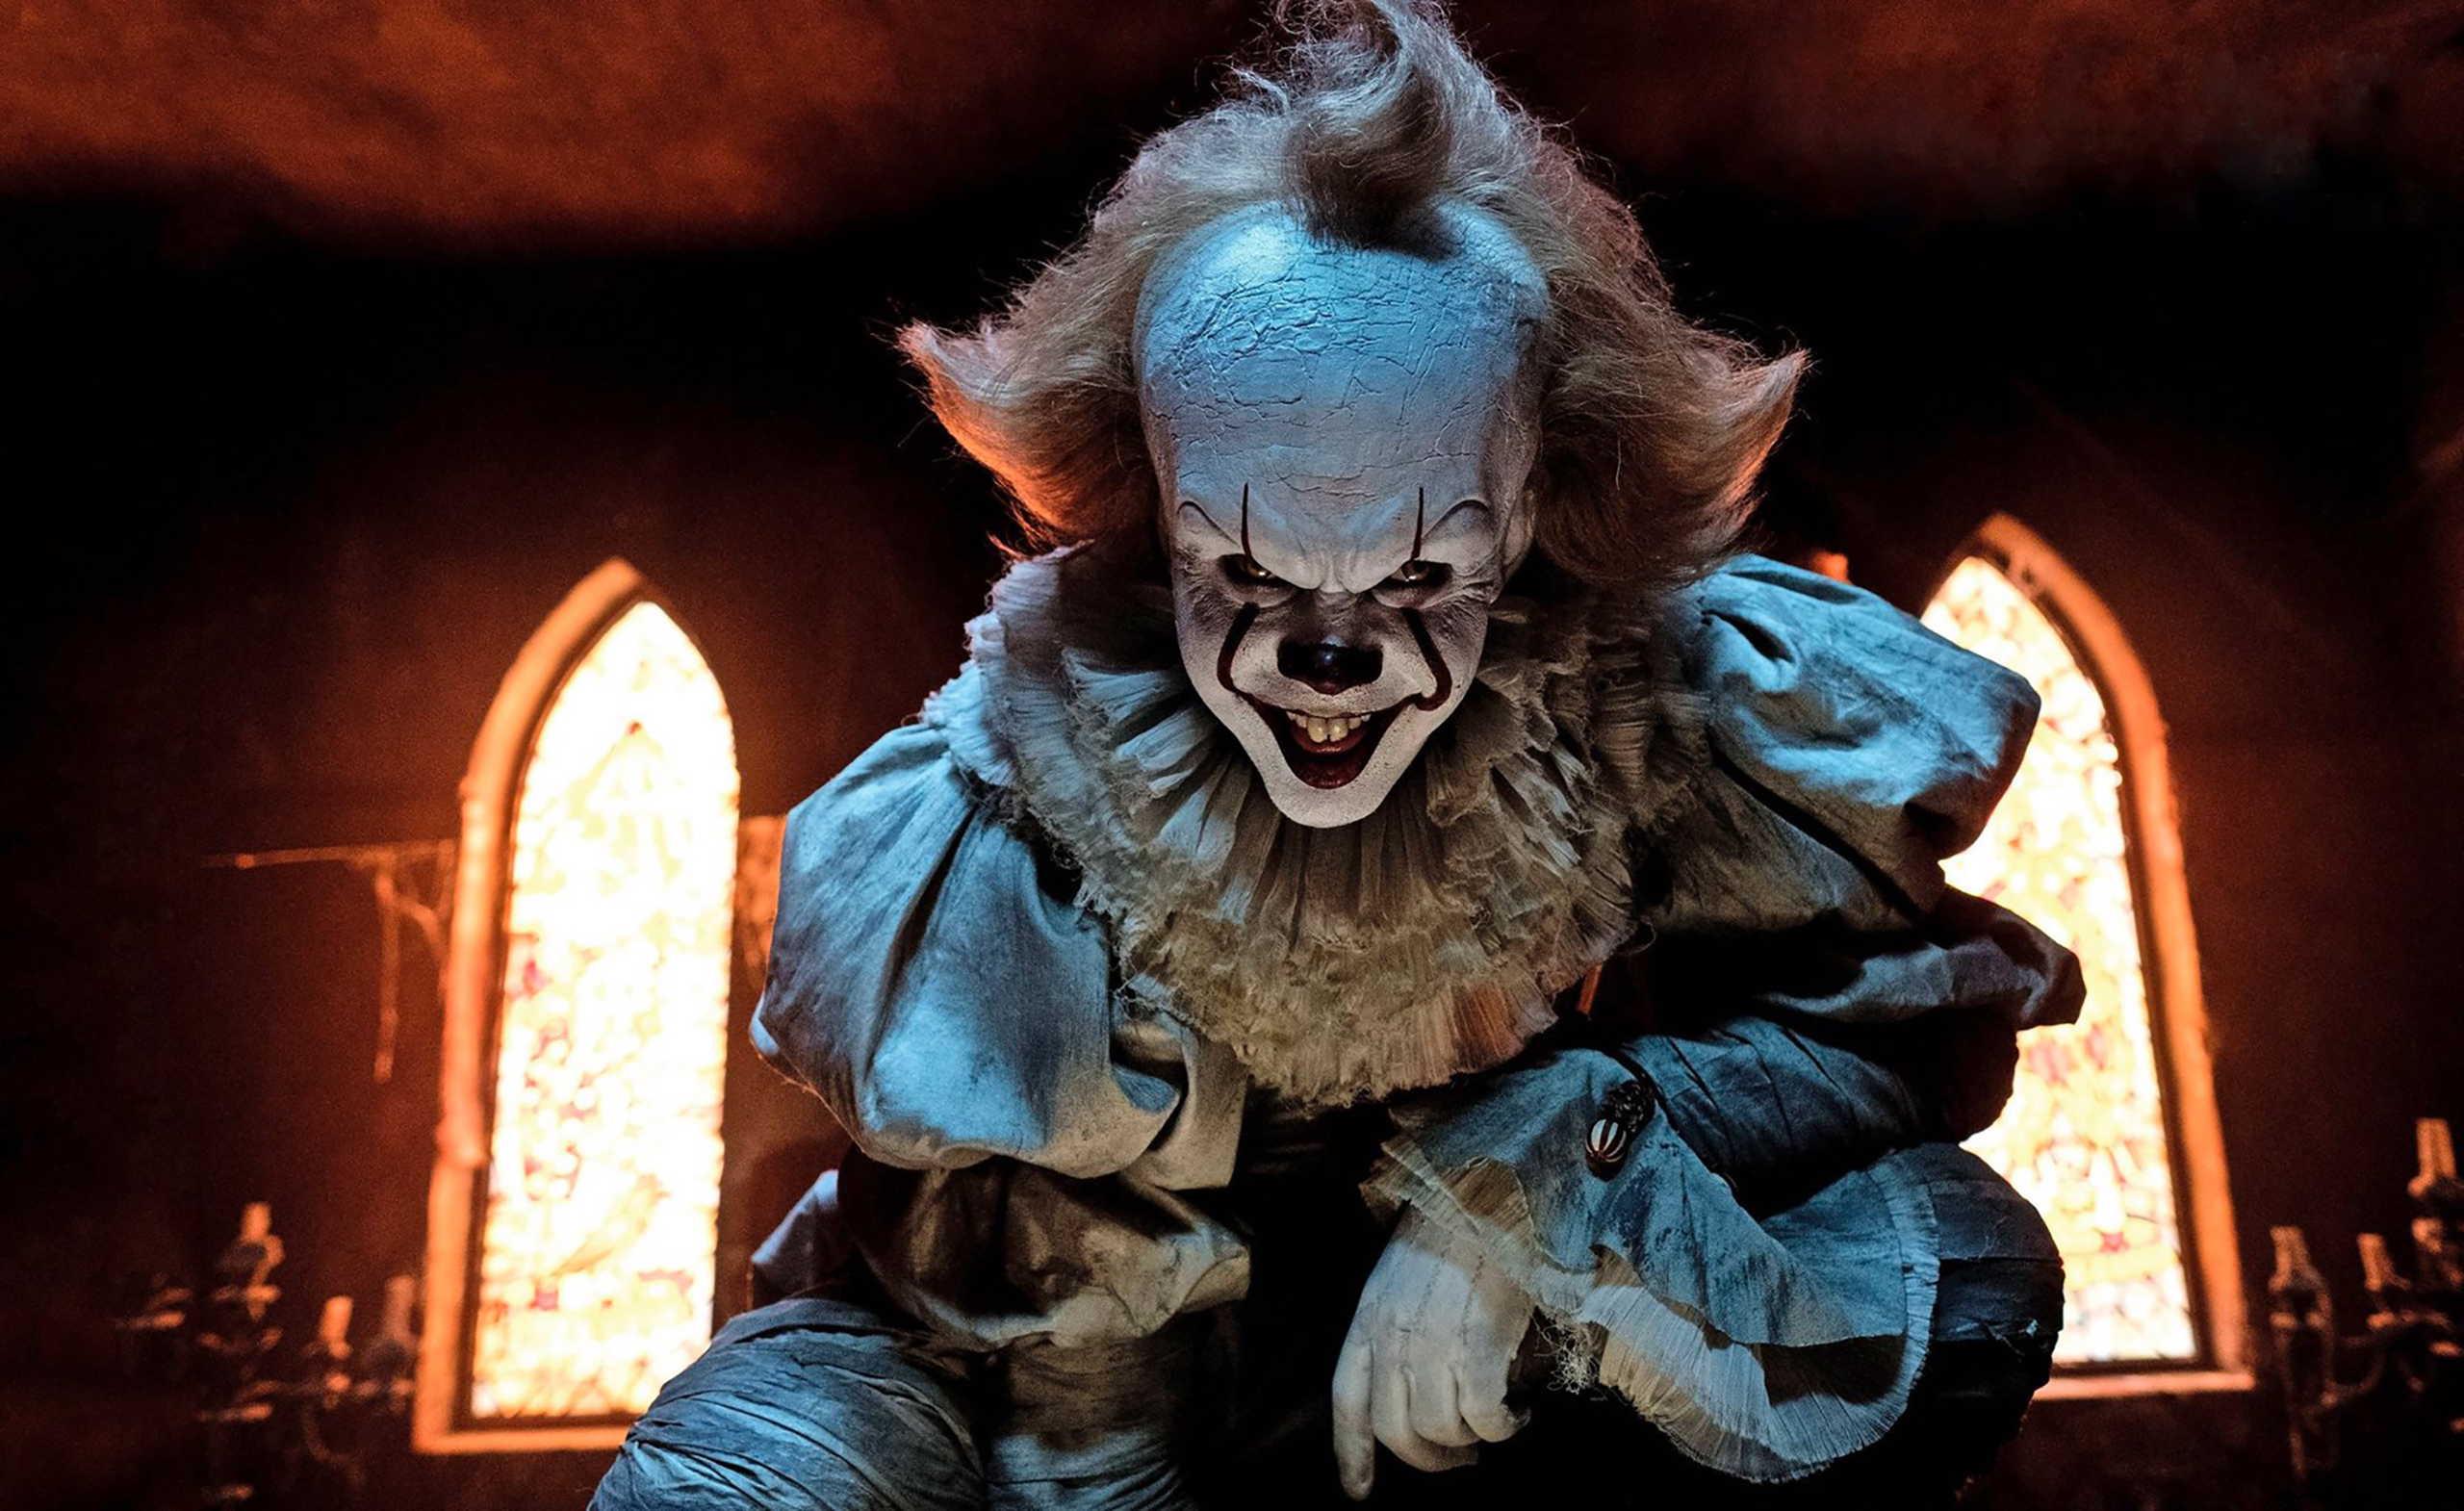 OPINION | IT: The real horror is not a killer clown, it's us